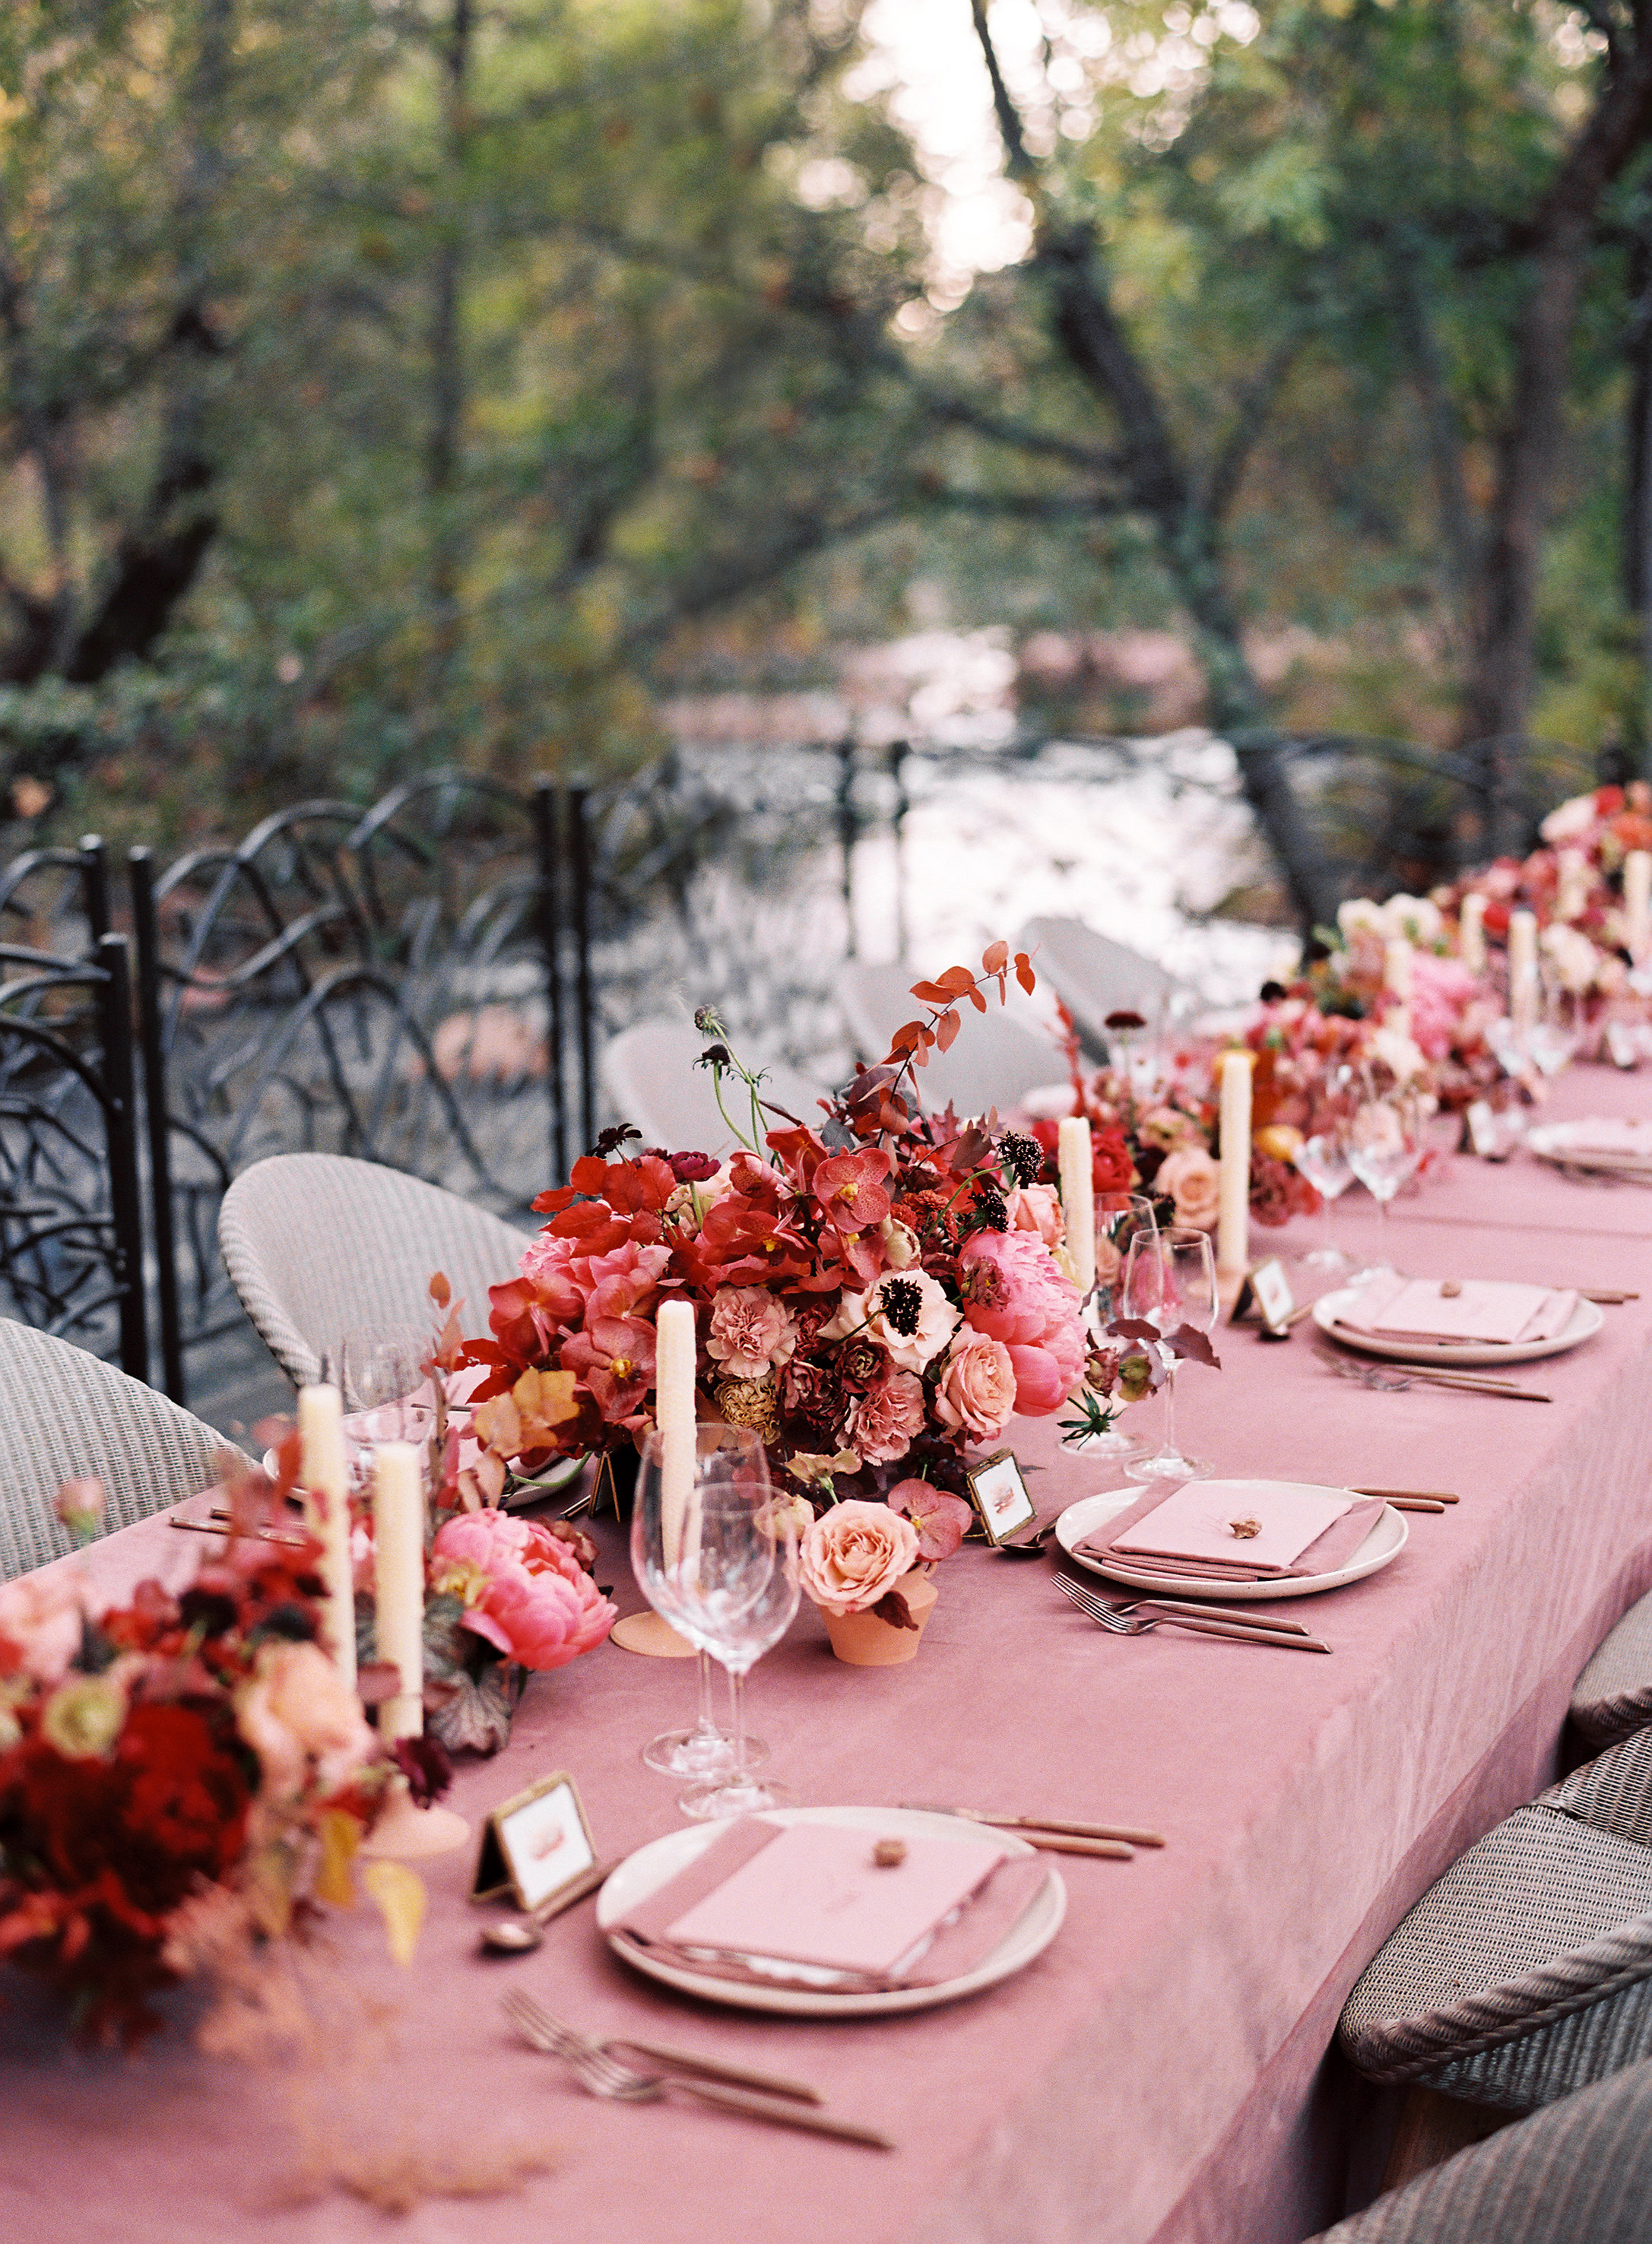 Wedding Planners Share Their Trend Predictions for Fall 2019